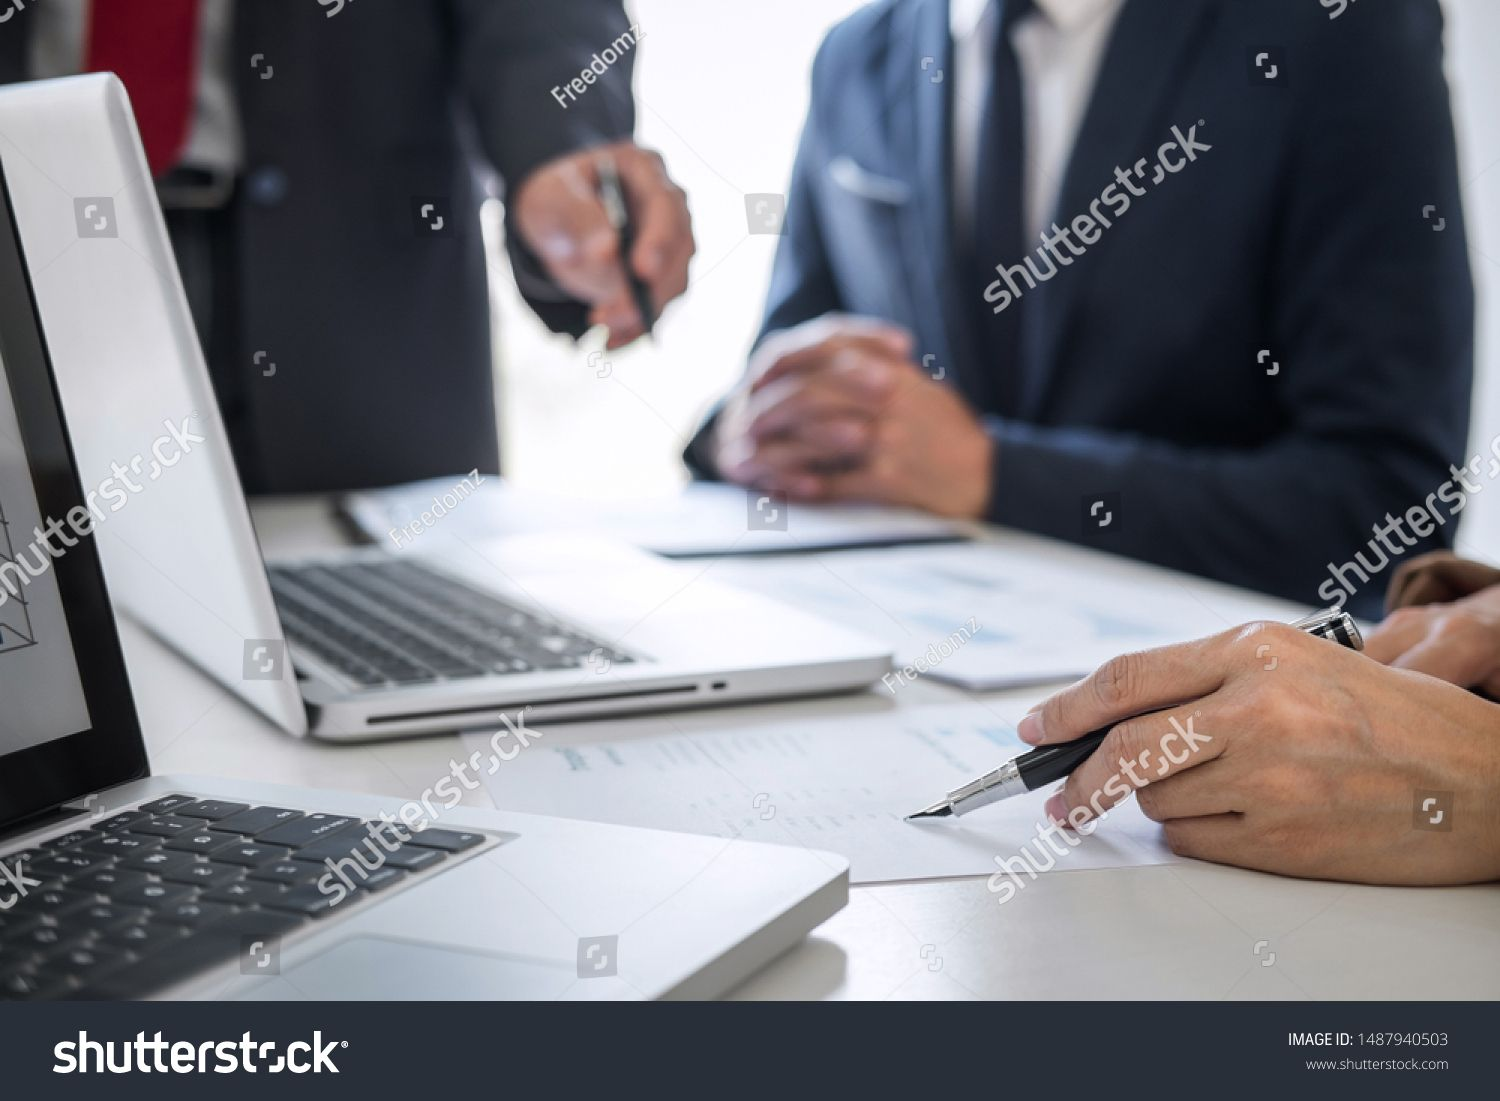 Business team meeting present Secretary presentation new idea and making report to professional investor with new finance project plan during discussion at meeting